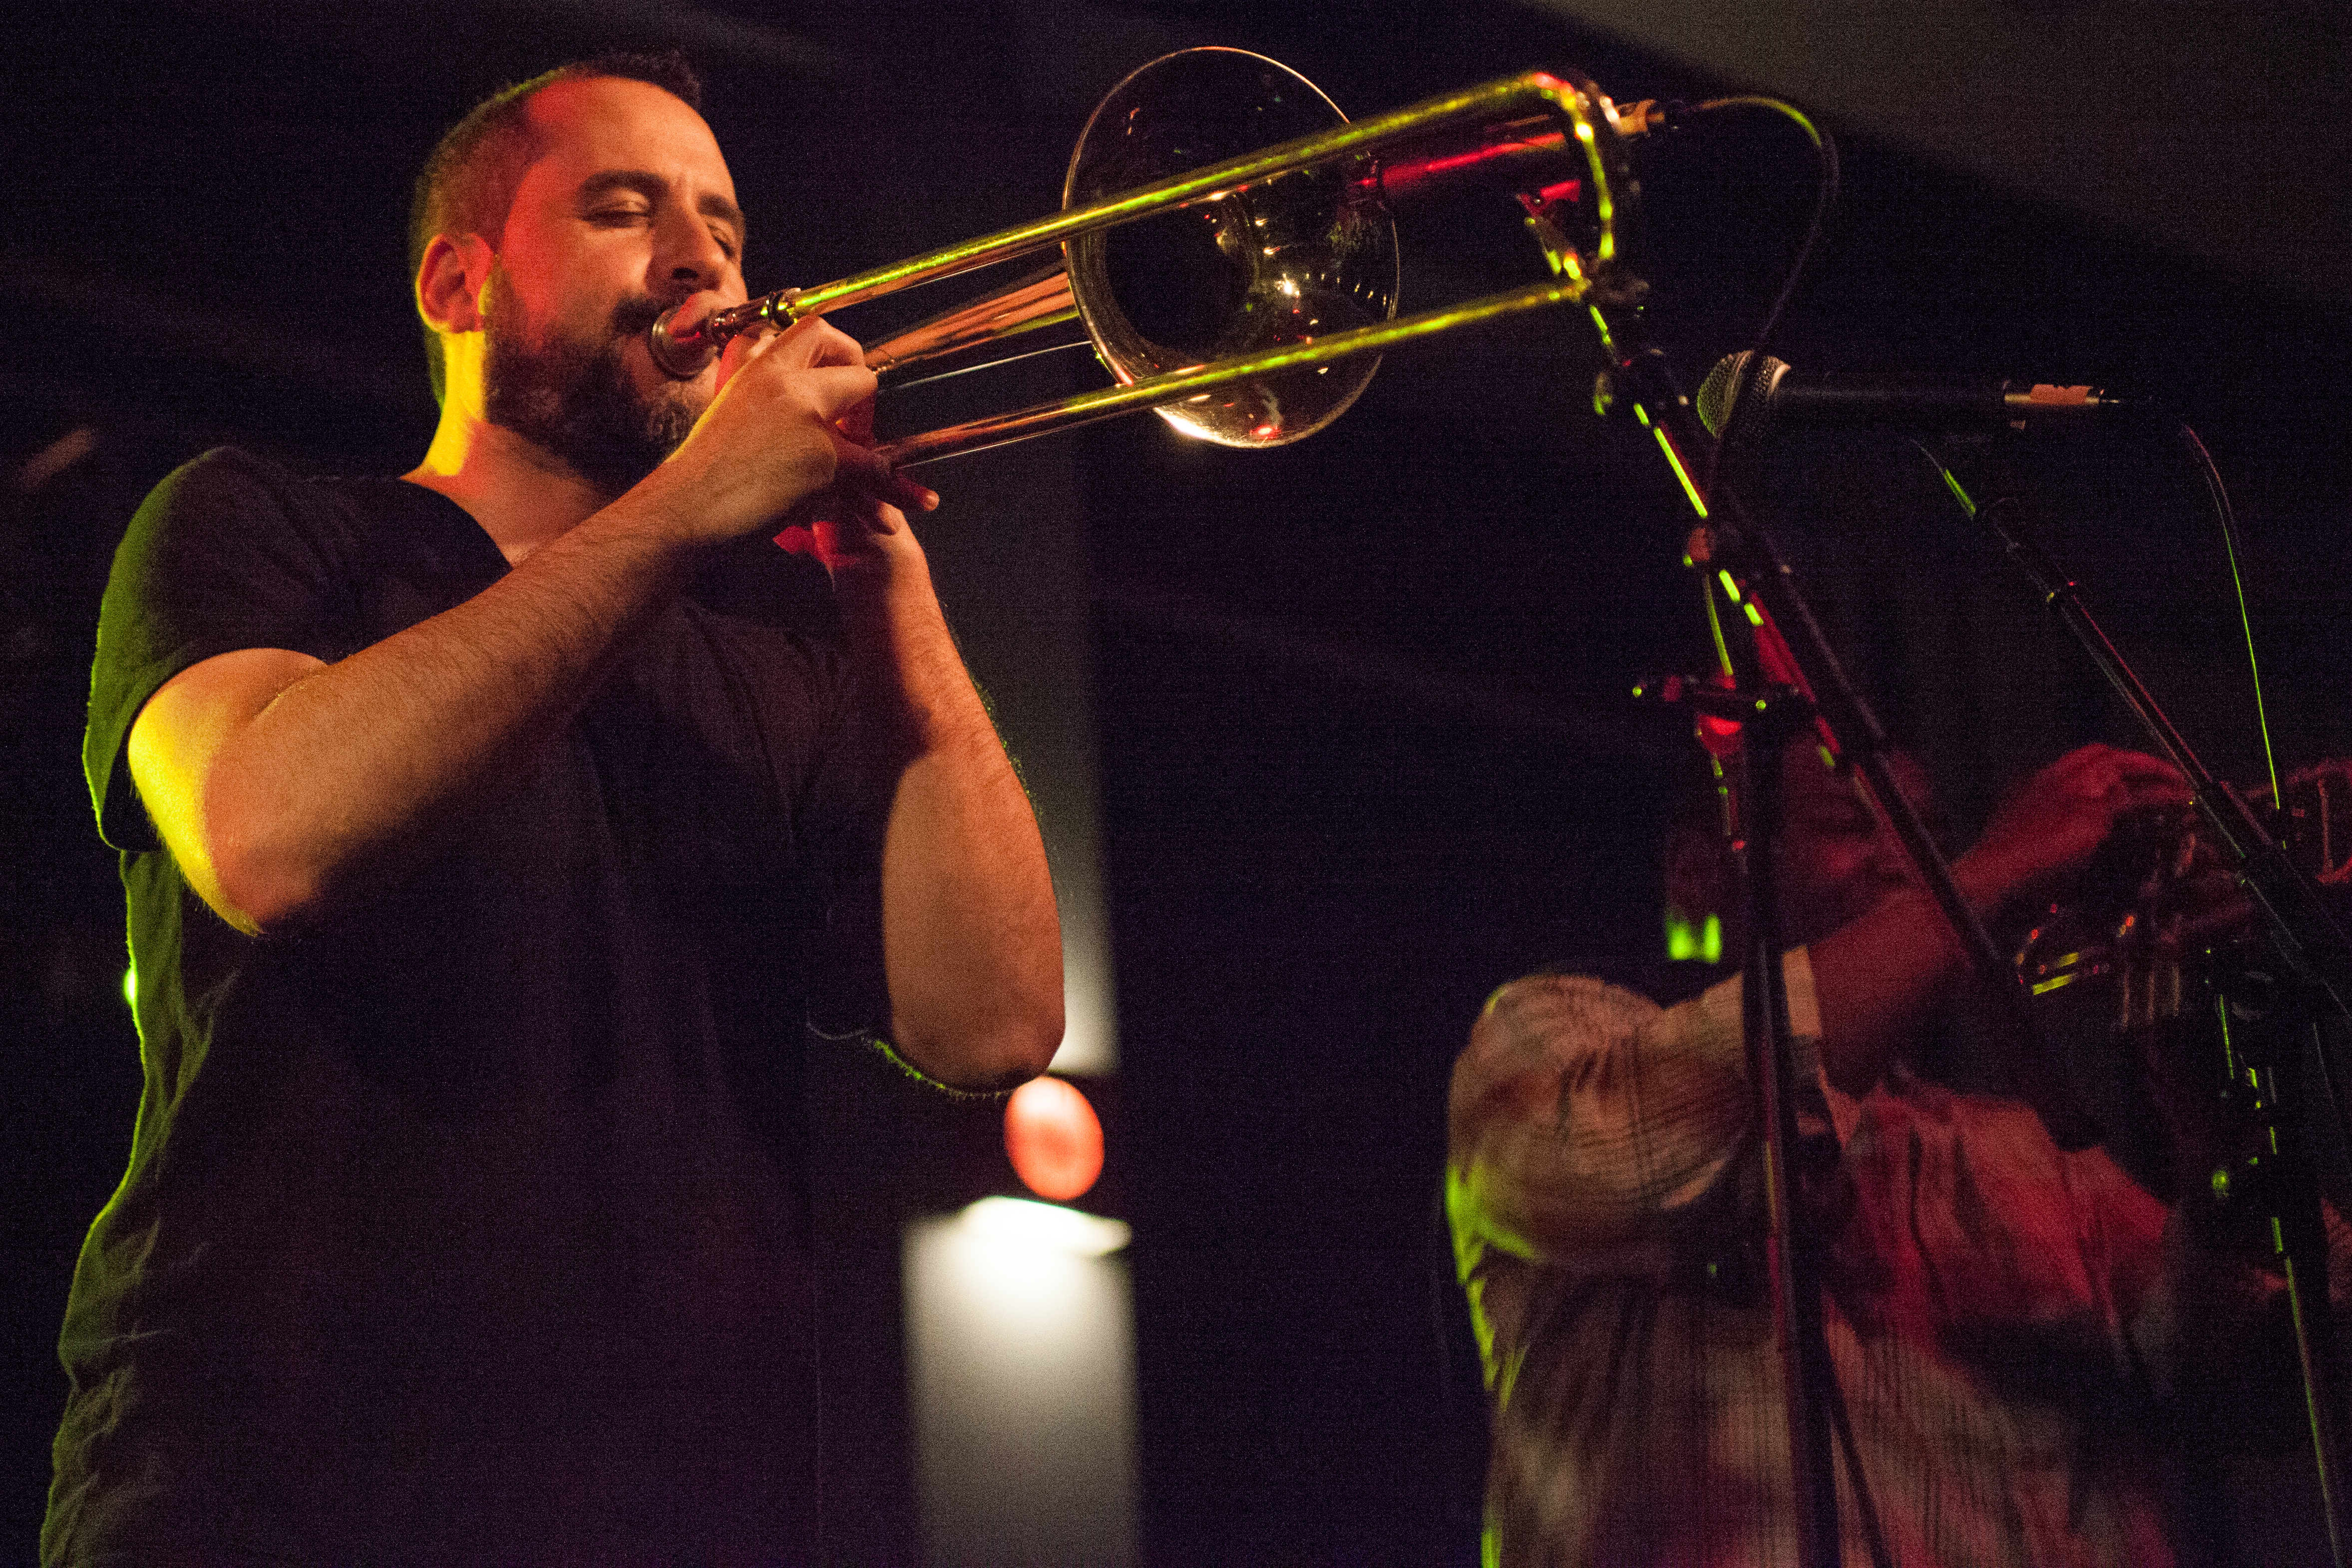 Nadav Nirenberg, above, is the bands third and current trombone player. He joined the band in 2010 and also sings backup vocals. KRYSTEN MASSA / THE STATESMAN